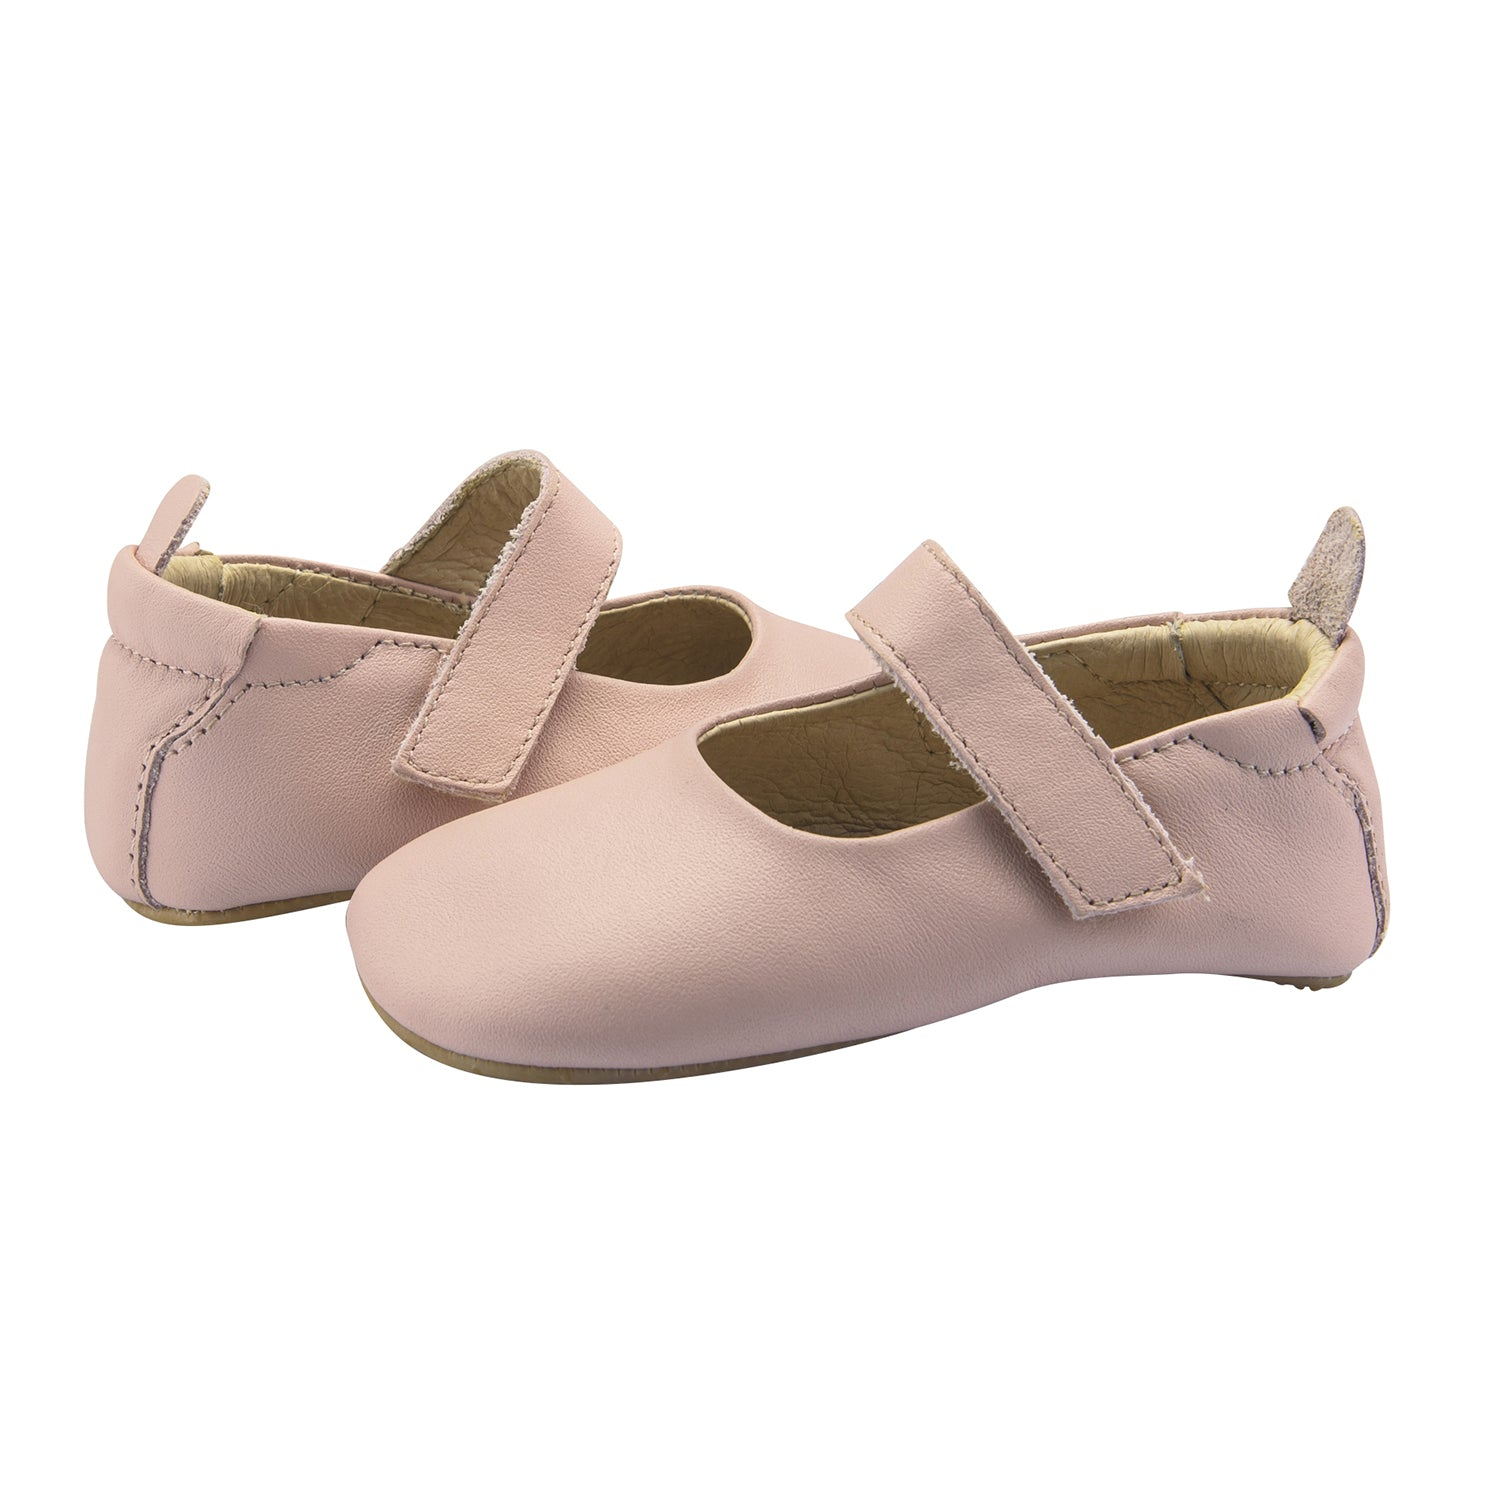 9637ab8745e Old Soles Gabrielle Powder Pink Rubber Sole Infant Baby Shoes